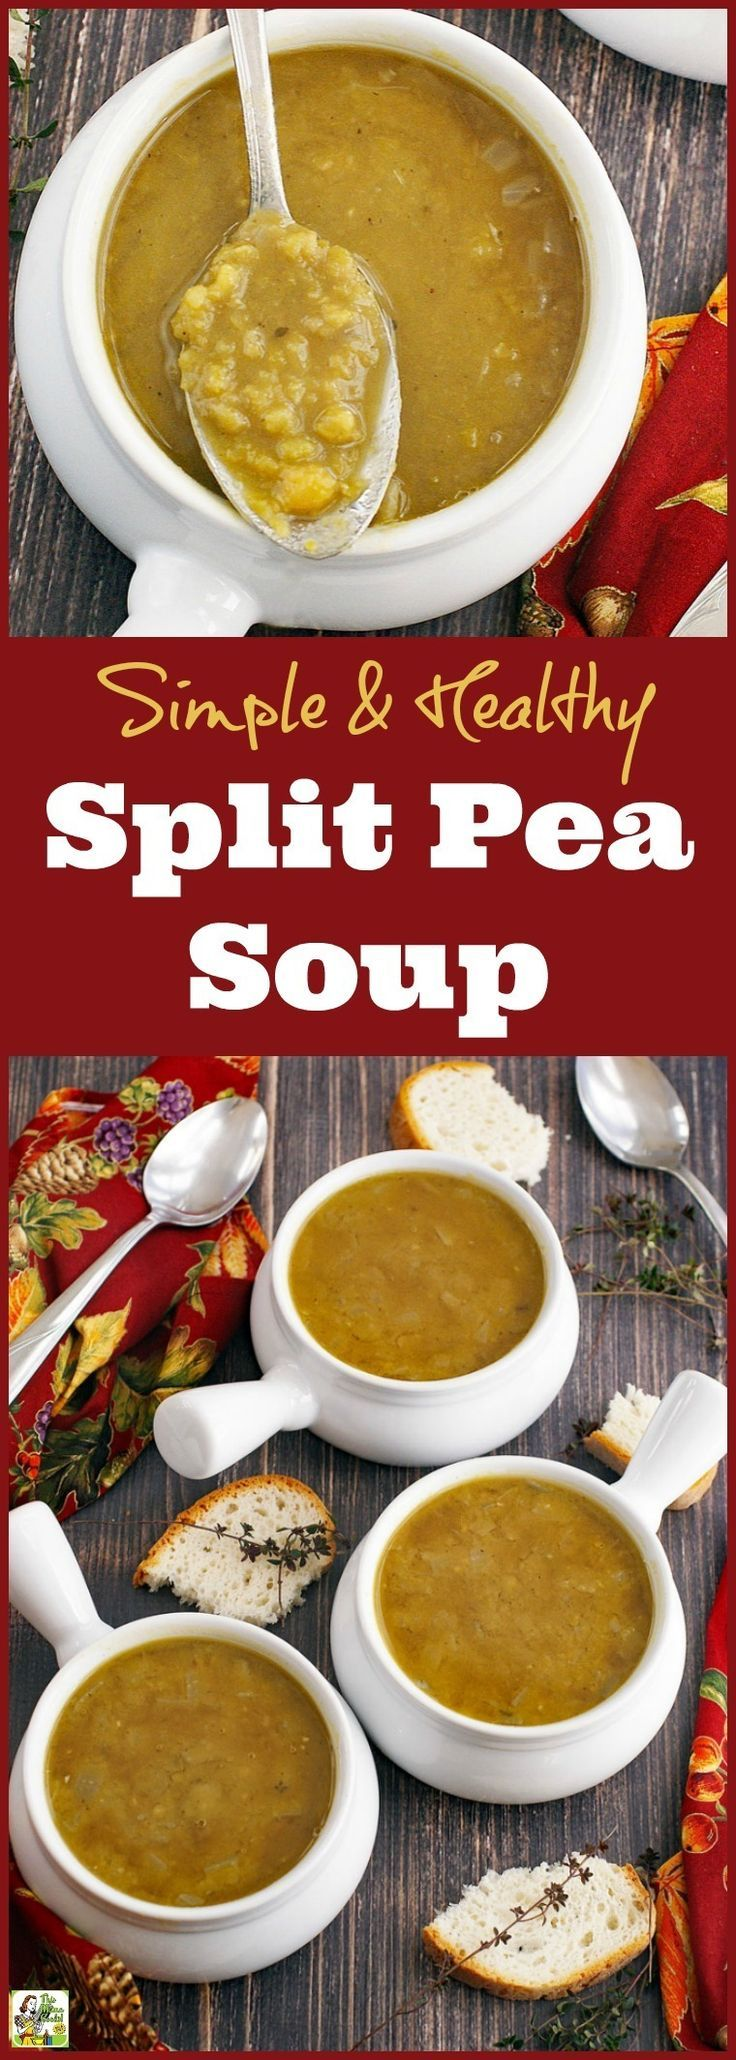 Learn how to make this Simple & Healthy Split Pea Soup recipe. Click to get this easy soup recipe that can be made in about an hour. Perfect for weeknights or make up a double batch to freeze and heat up in your slow cooker or Crock-Pot.